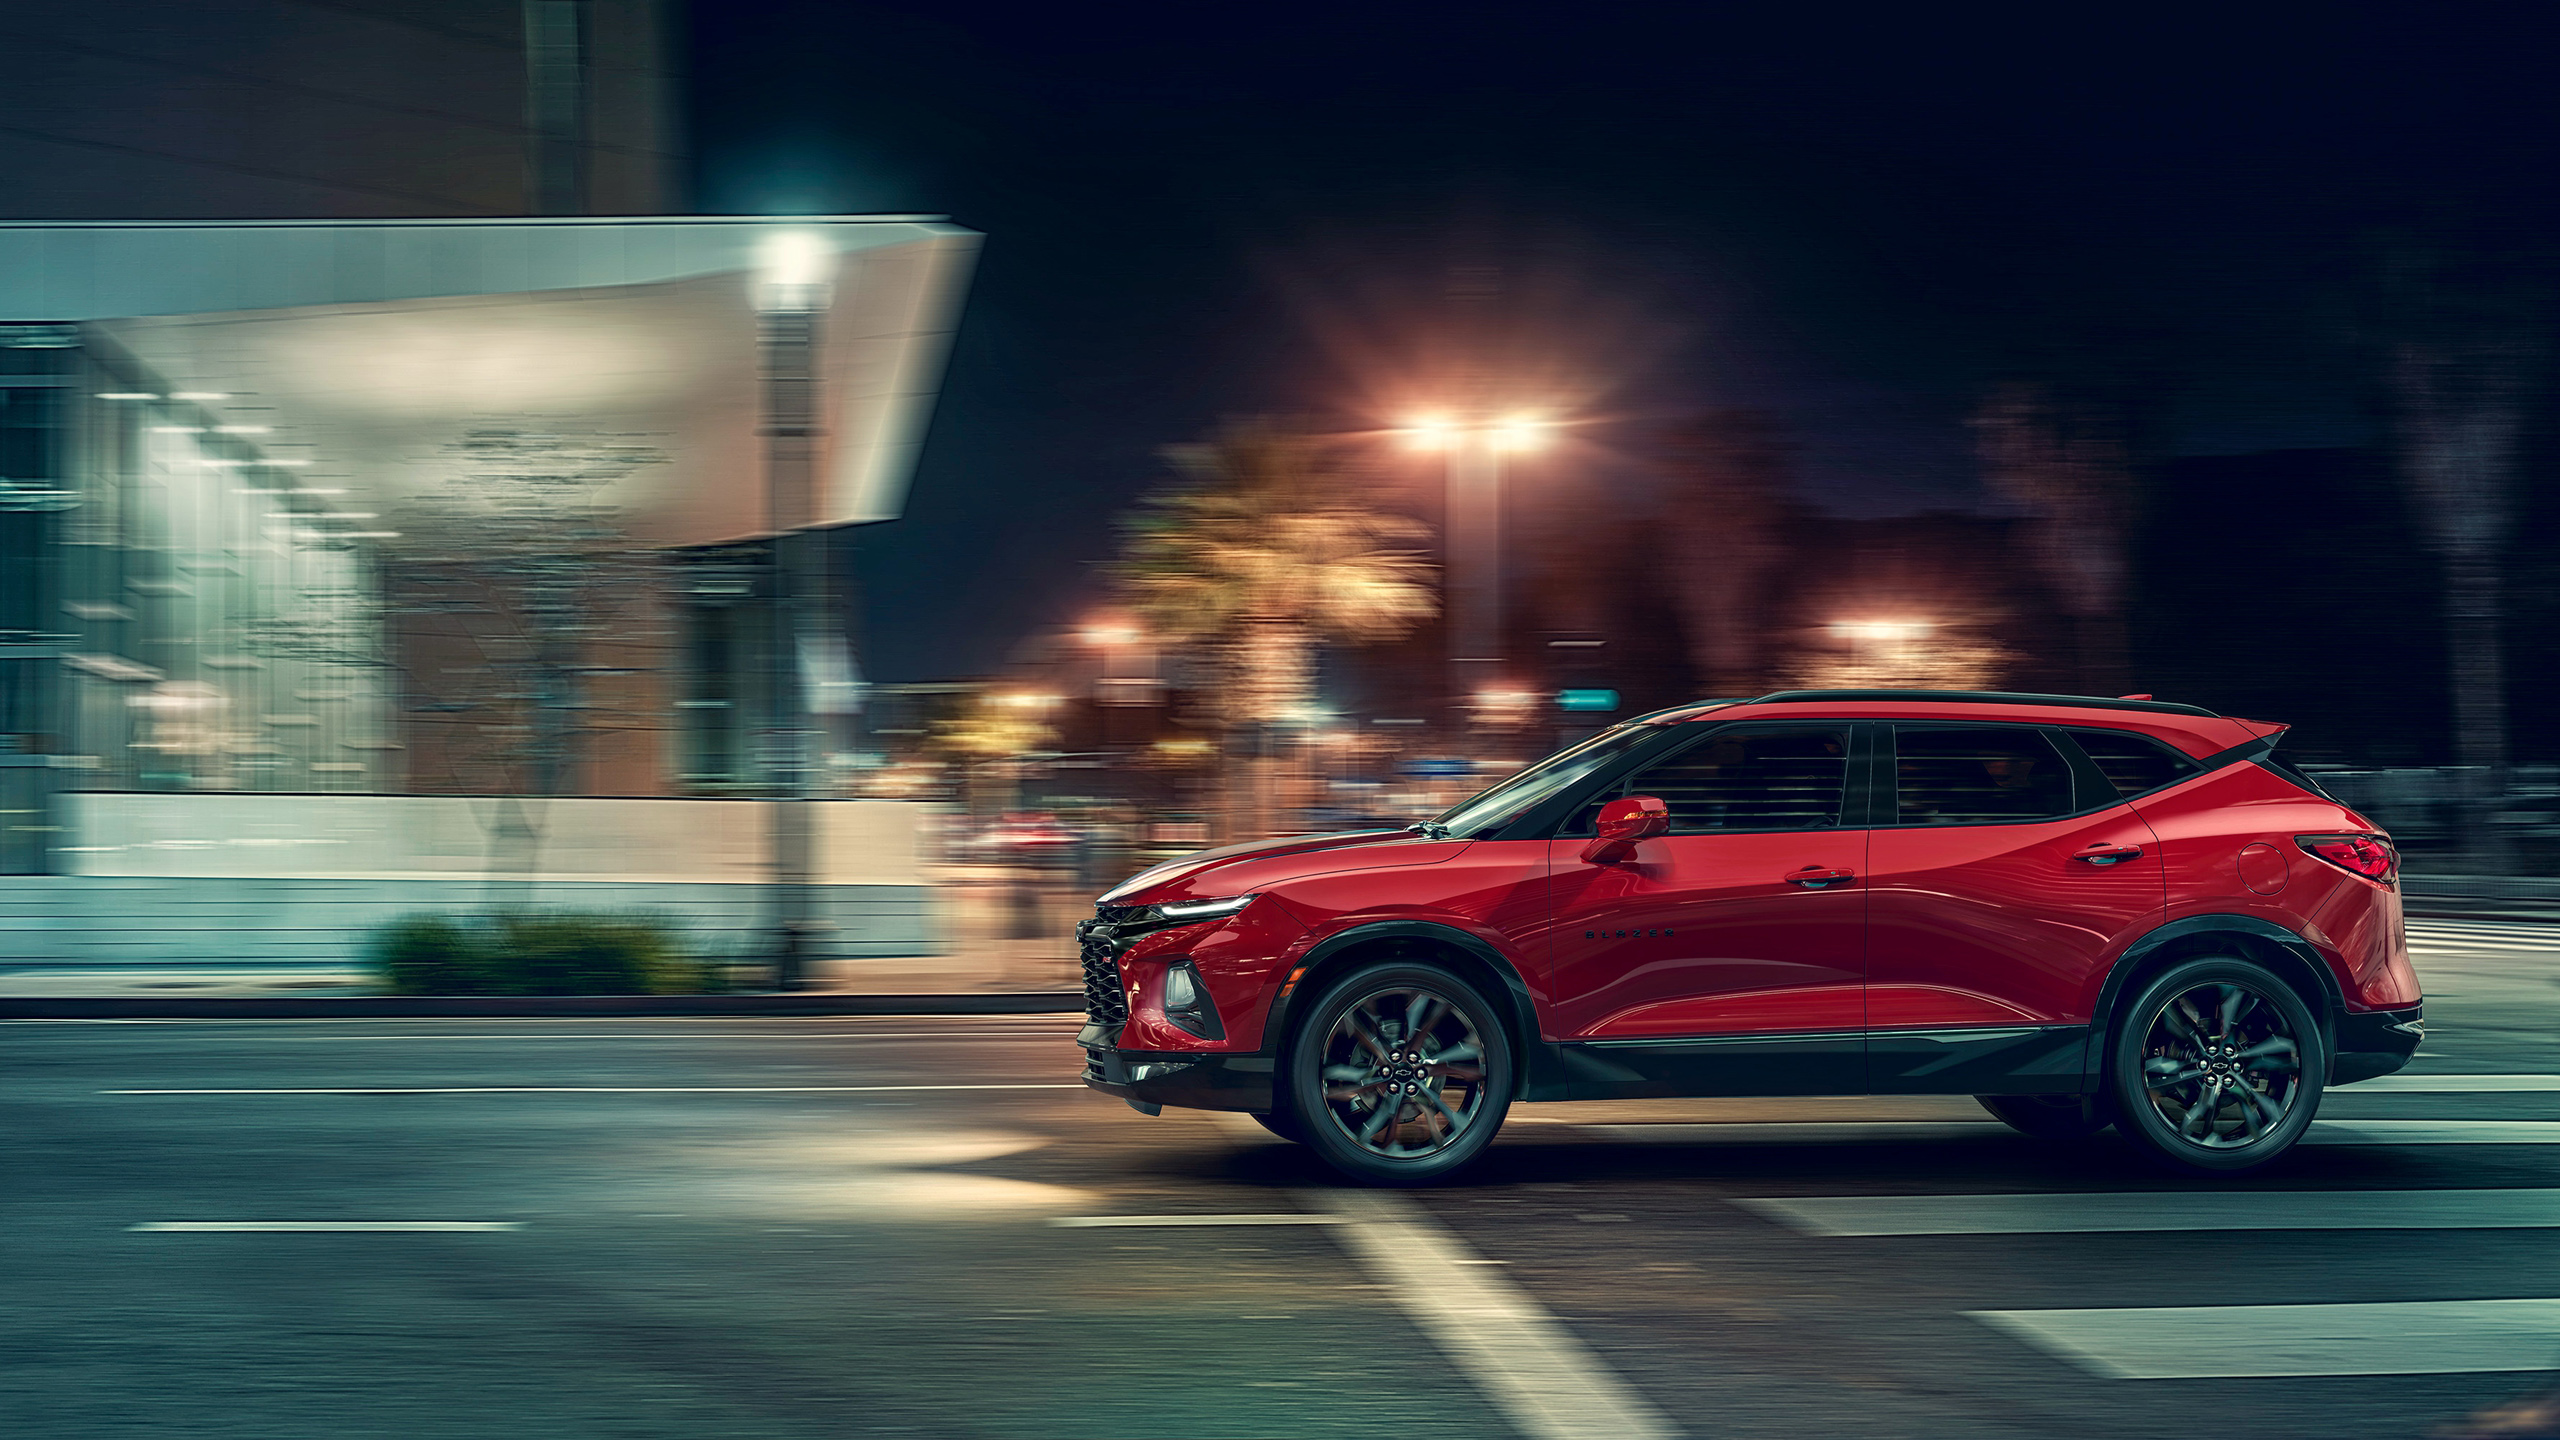 2019 Chevrolet Blazer RS Wallpaper | HD Car Wallpapers ...